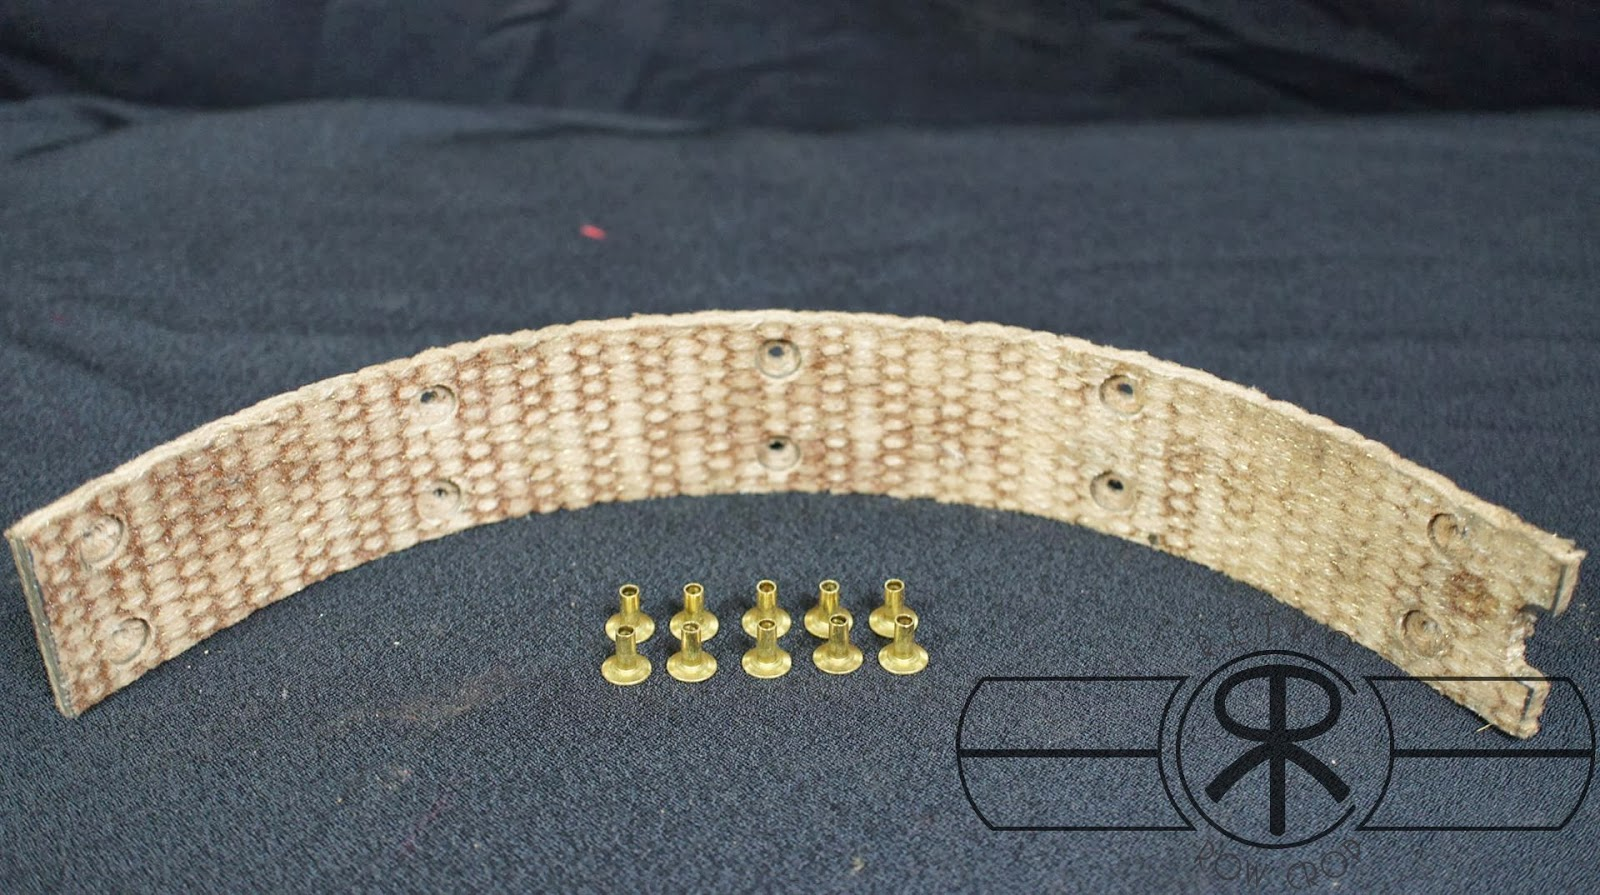 Brake Relining Material : Retro row crop brake band relining service for farmall